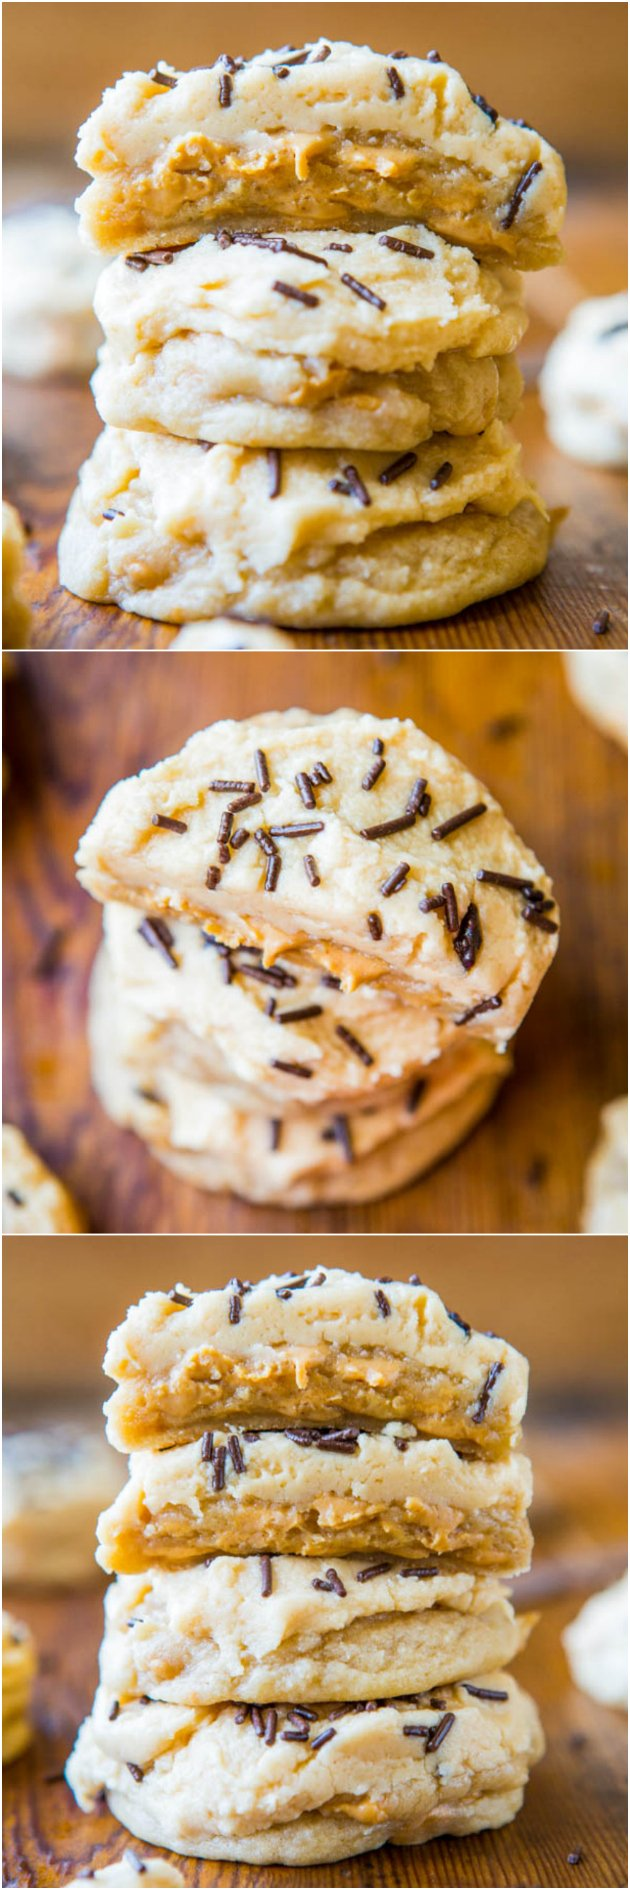 Lofthouse-Style Soft Peanut Butter Chip Sugar Cookies with Peanut ...